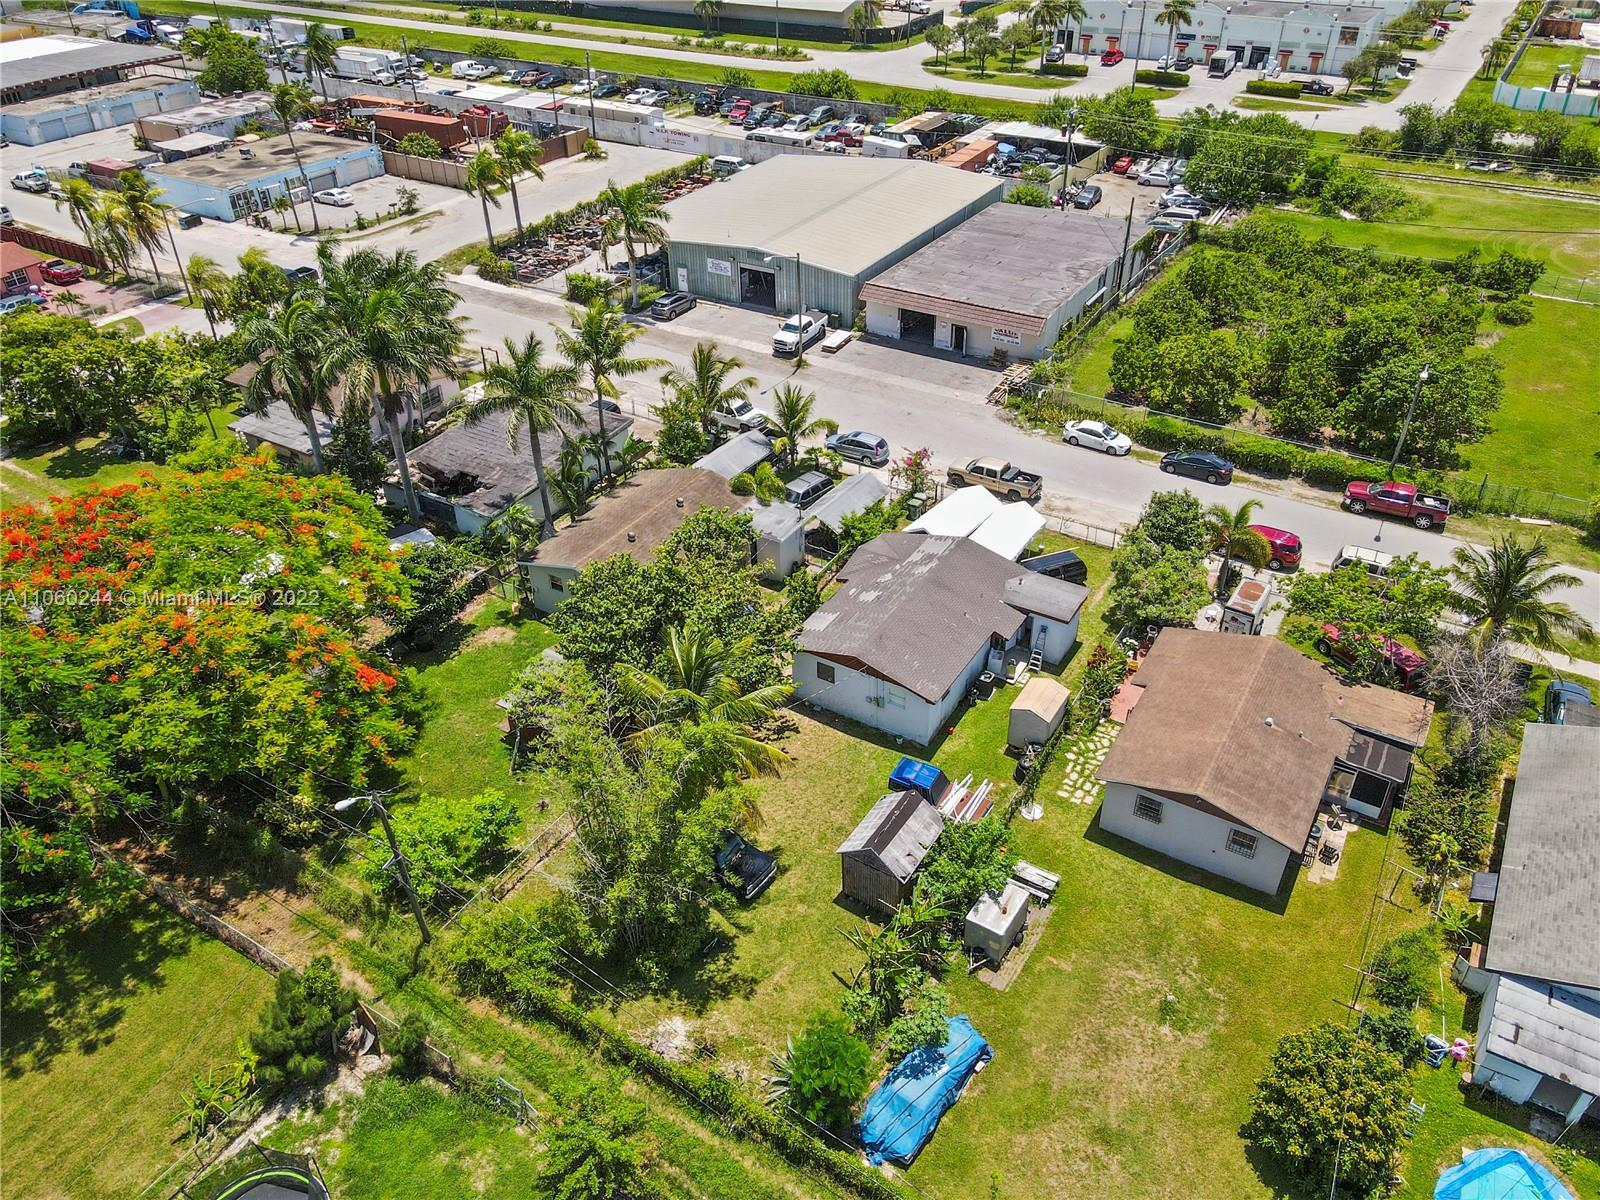 433 NW 9th Ave, Homestead, Florida 33030